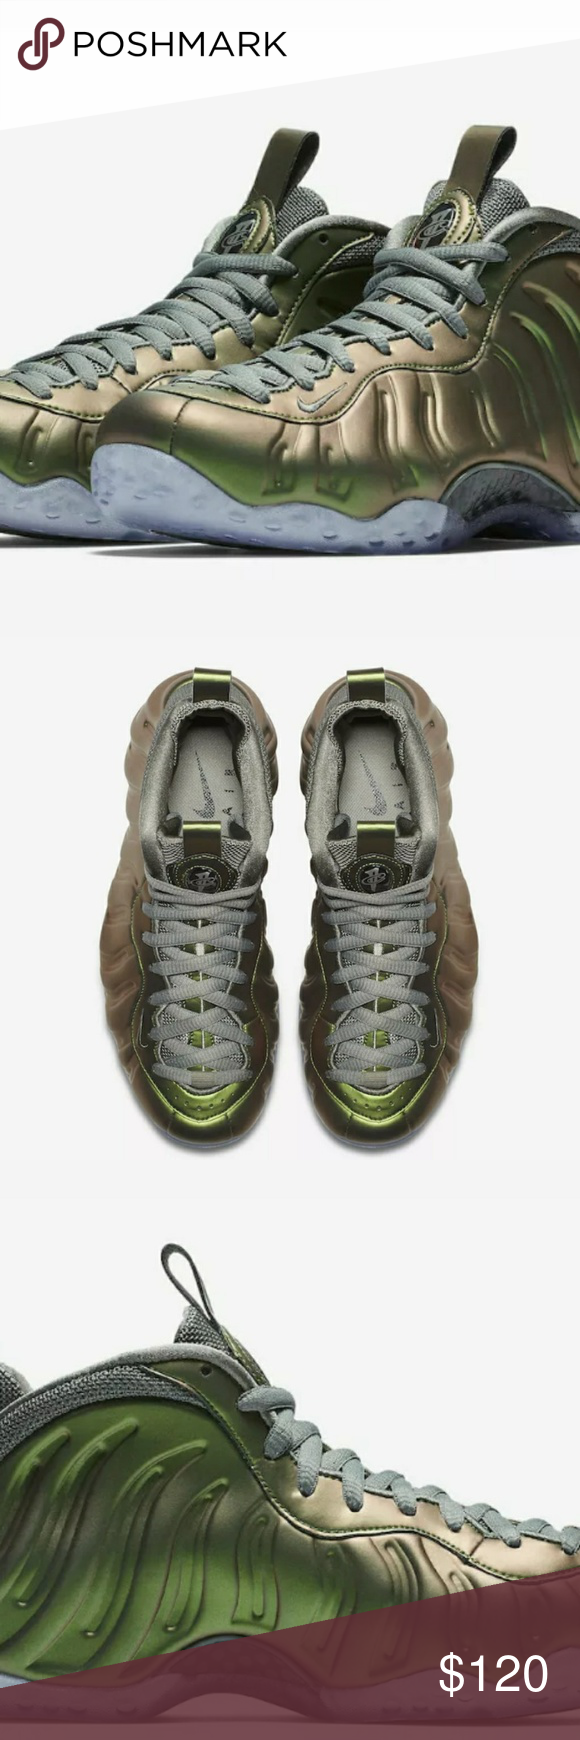 Nike Air Foamposite One Hollogram Uk 9 Us 10Bump